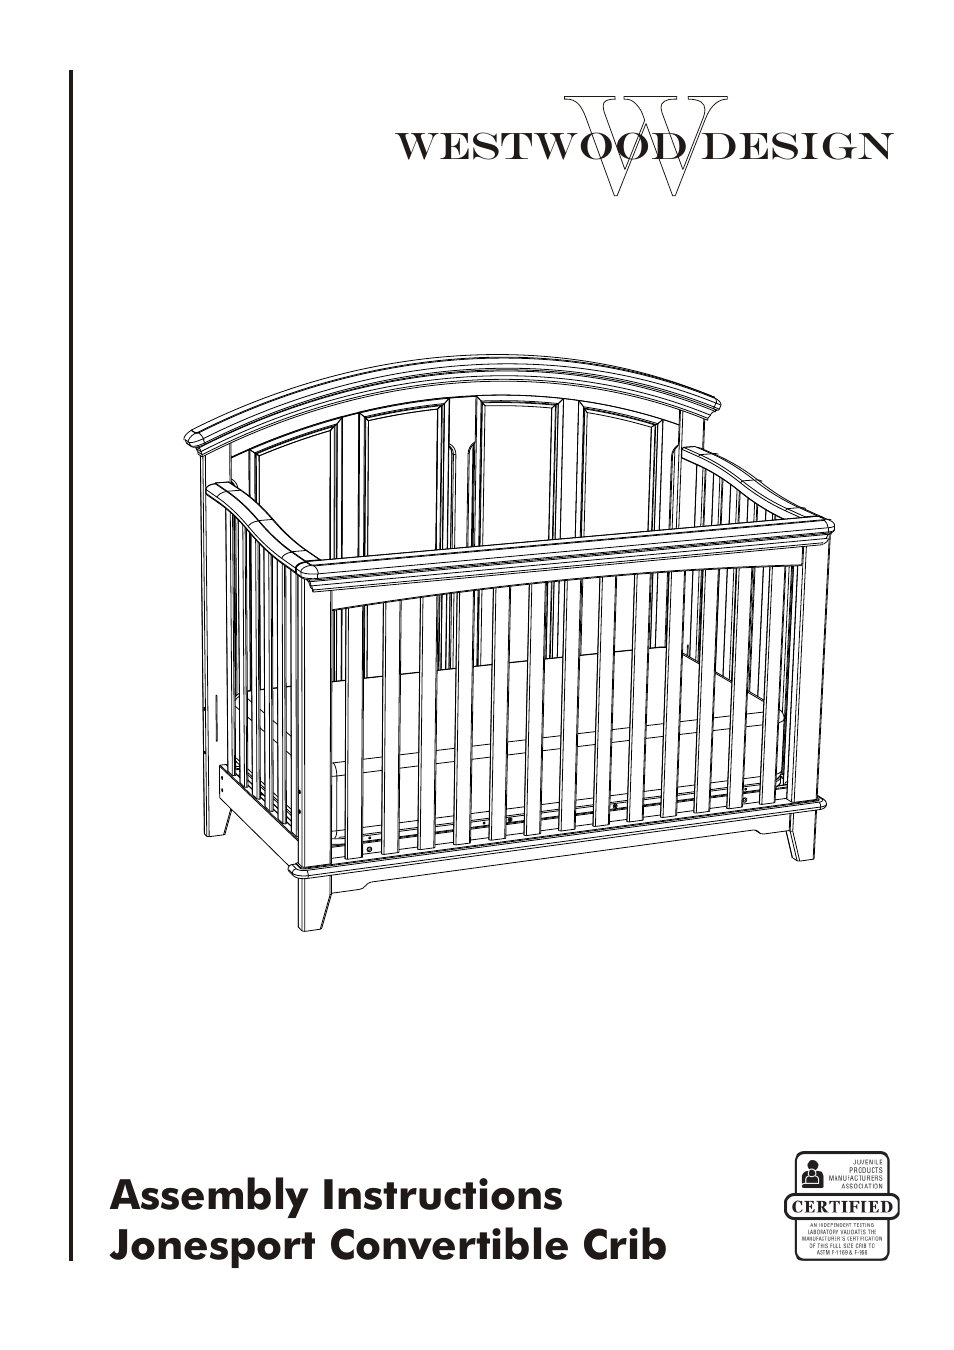 Westwood Design Jonesport Convertible Crib User Manual